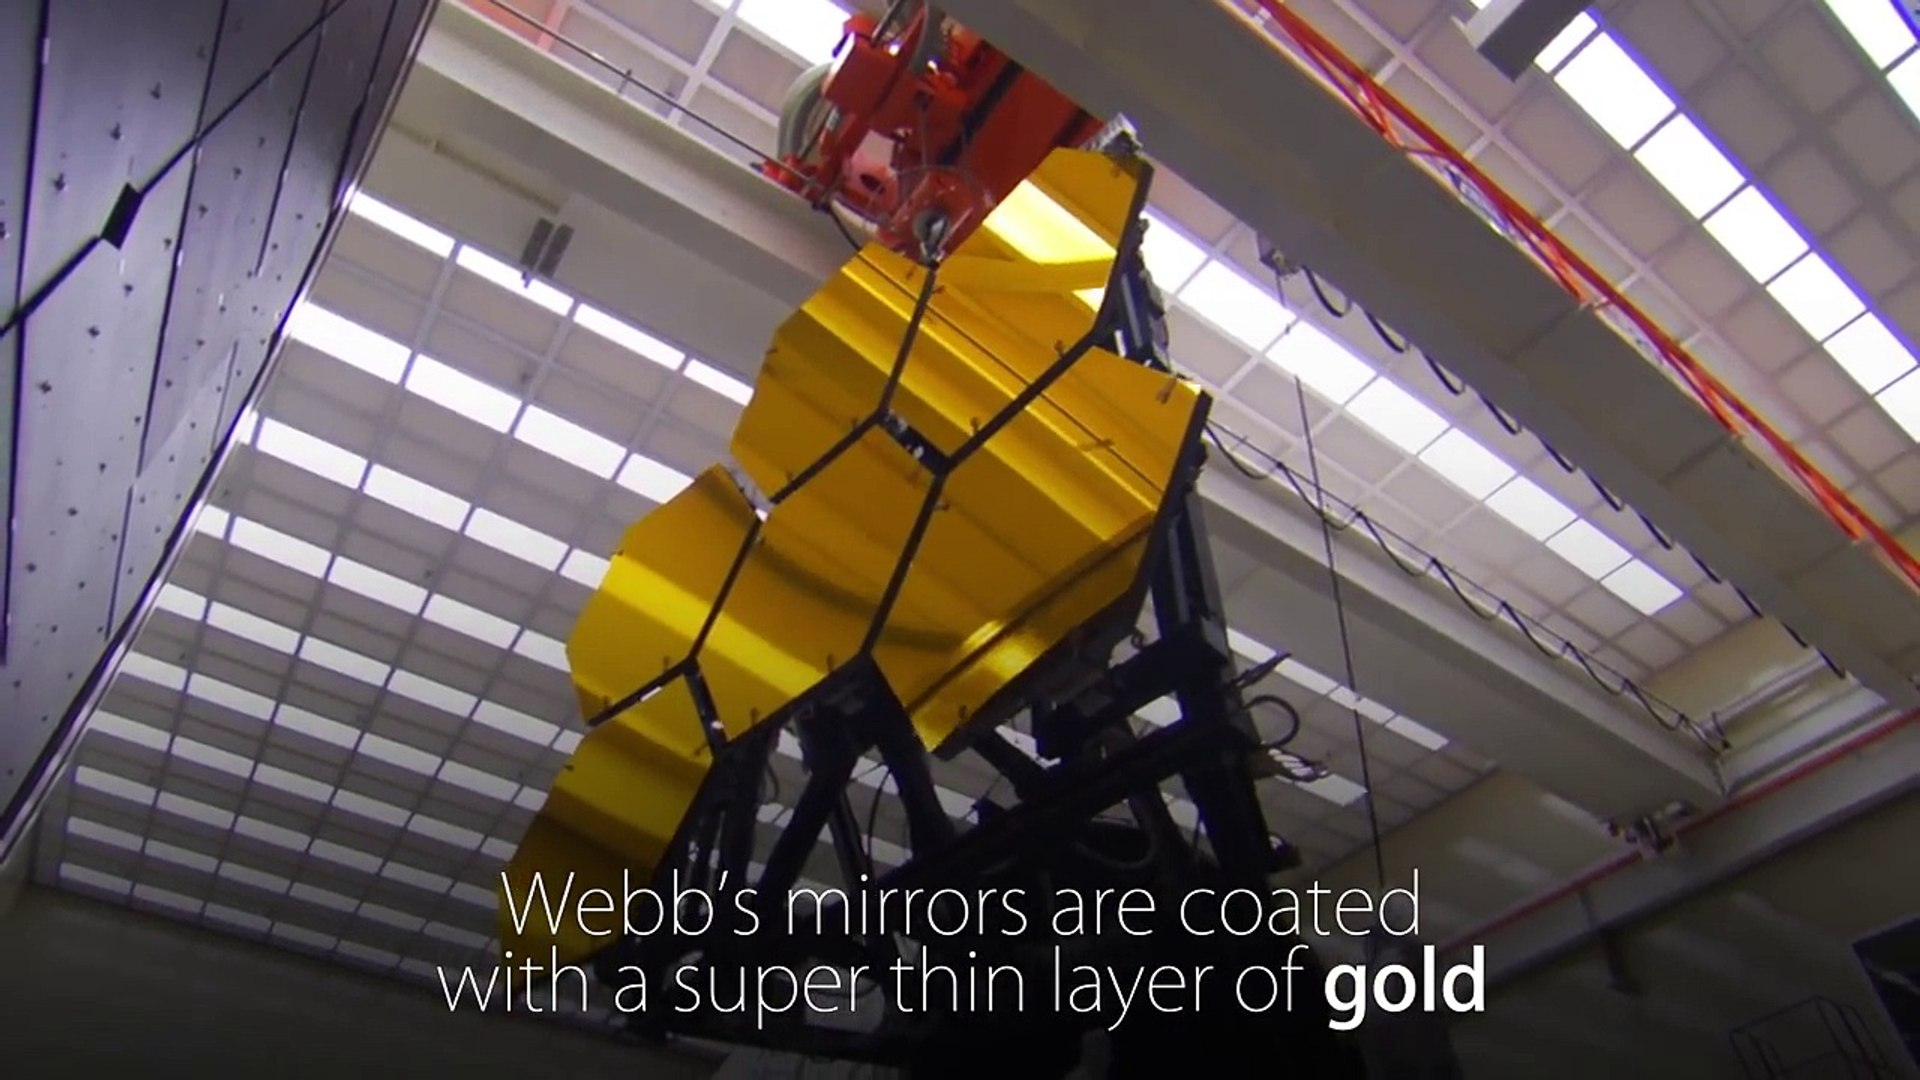 NASA VIDEO: Top Ten Facts about the James Webb Space Telescope - Deep Space Astronomy